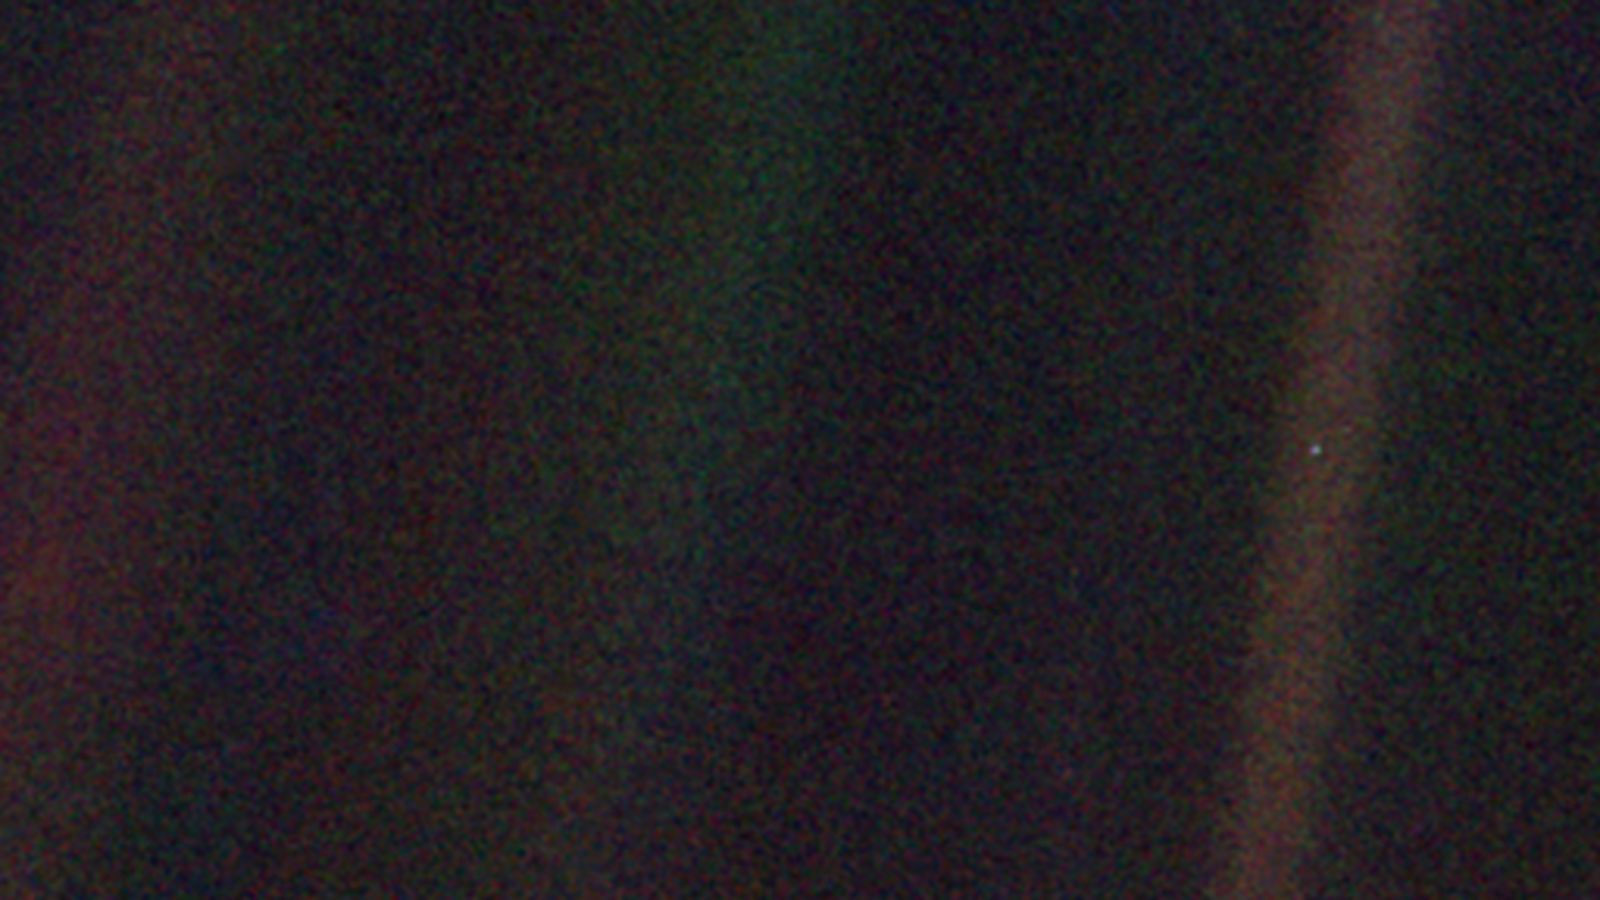 Picture of Earth as seen from Voyager I as it was leaving our solar system